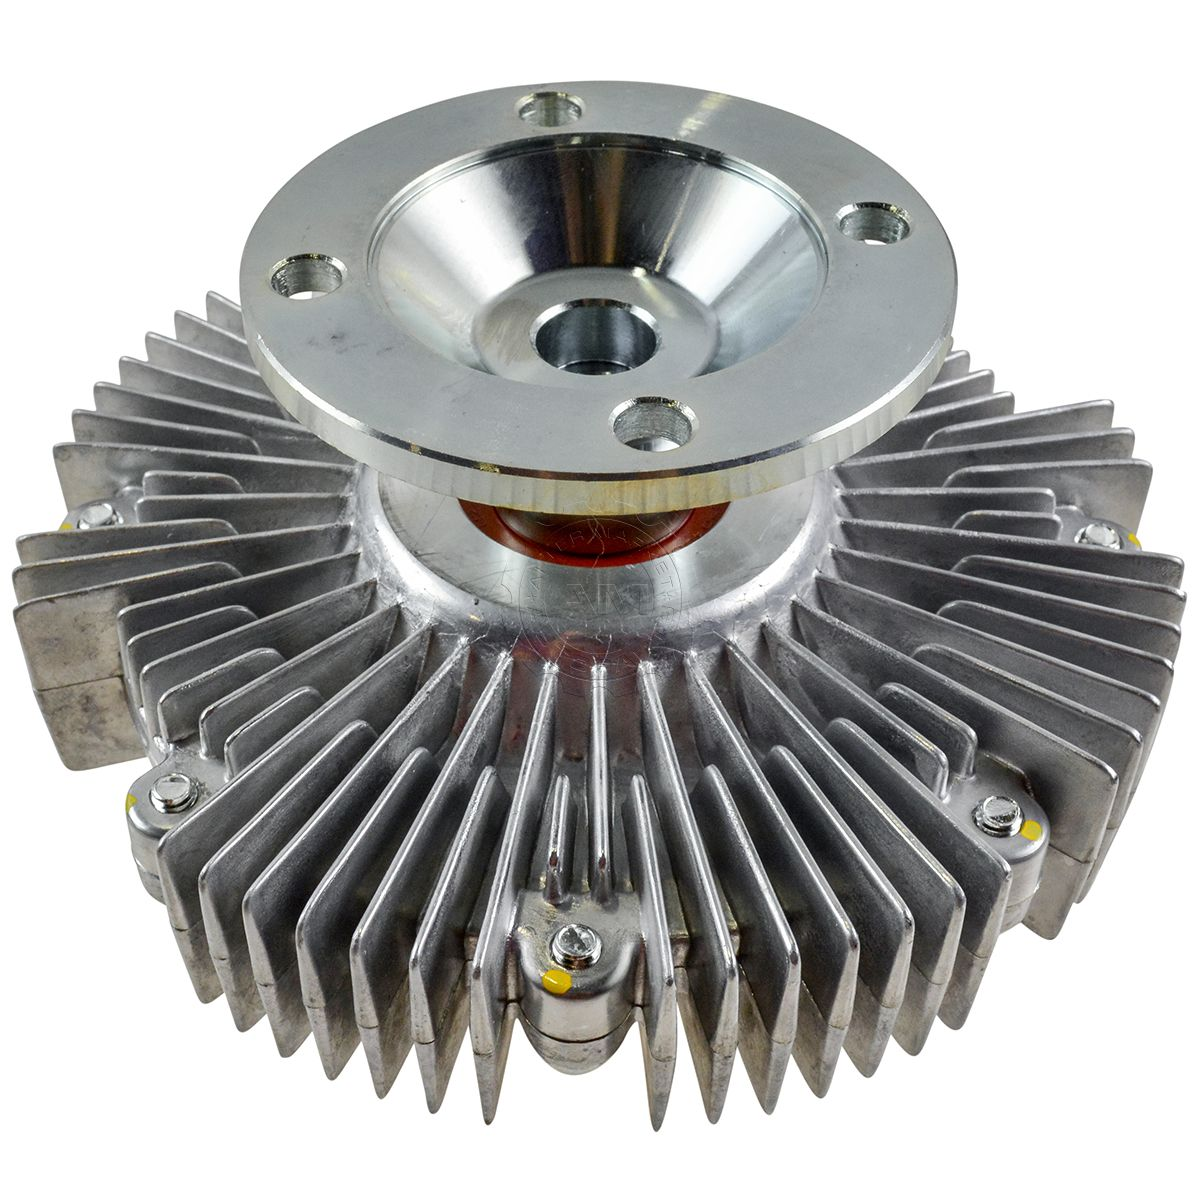 hight resolution of radiator cooling fan clutch for toyota tundra sequoia 4runner lexus gx470